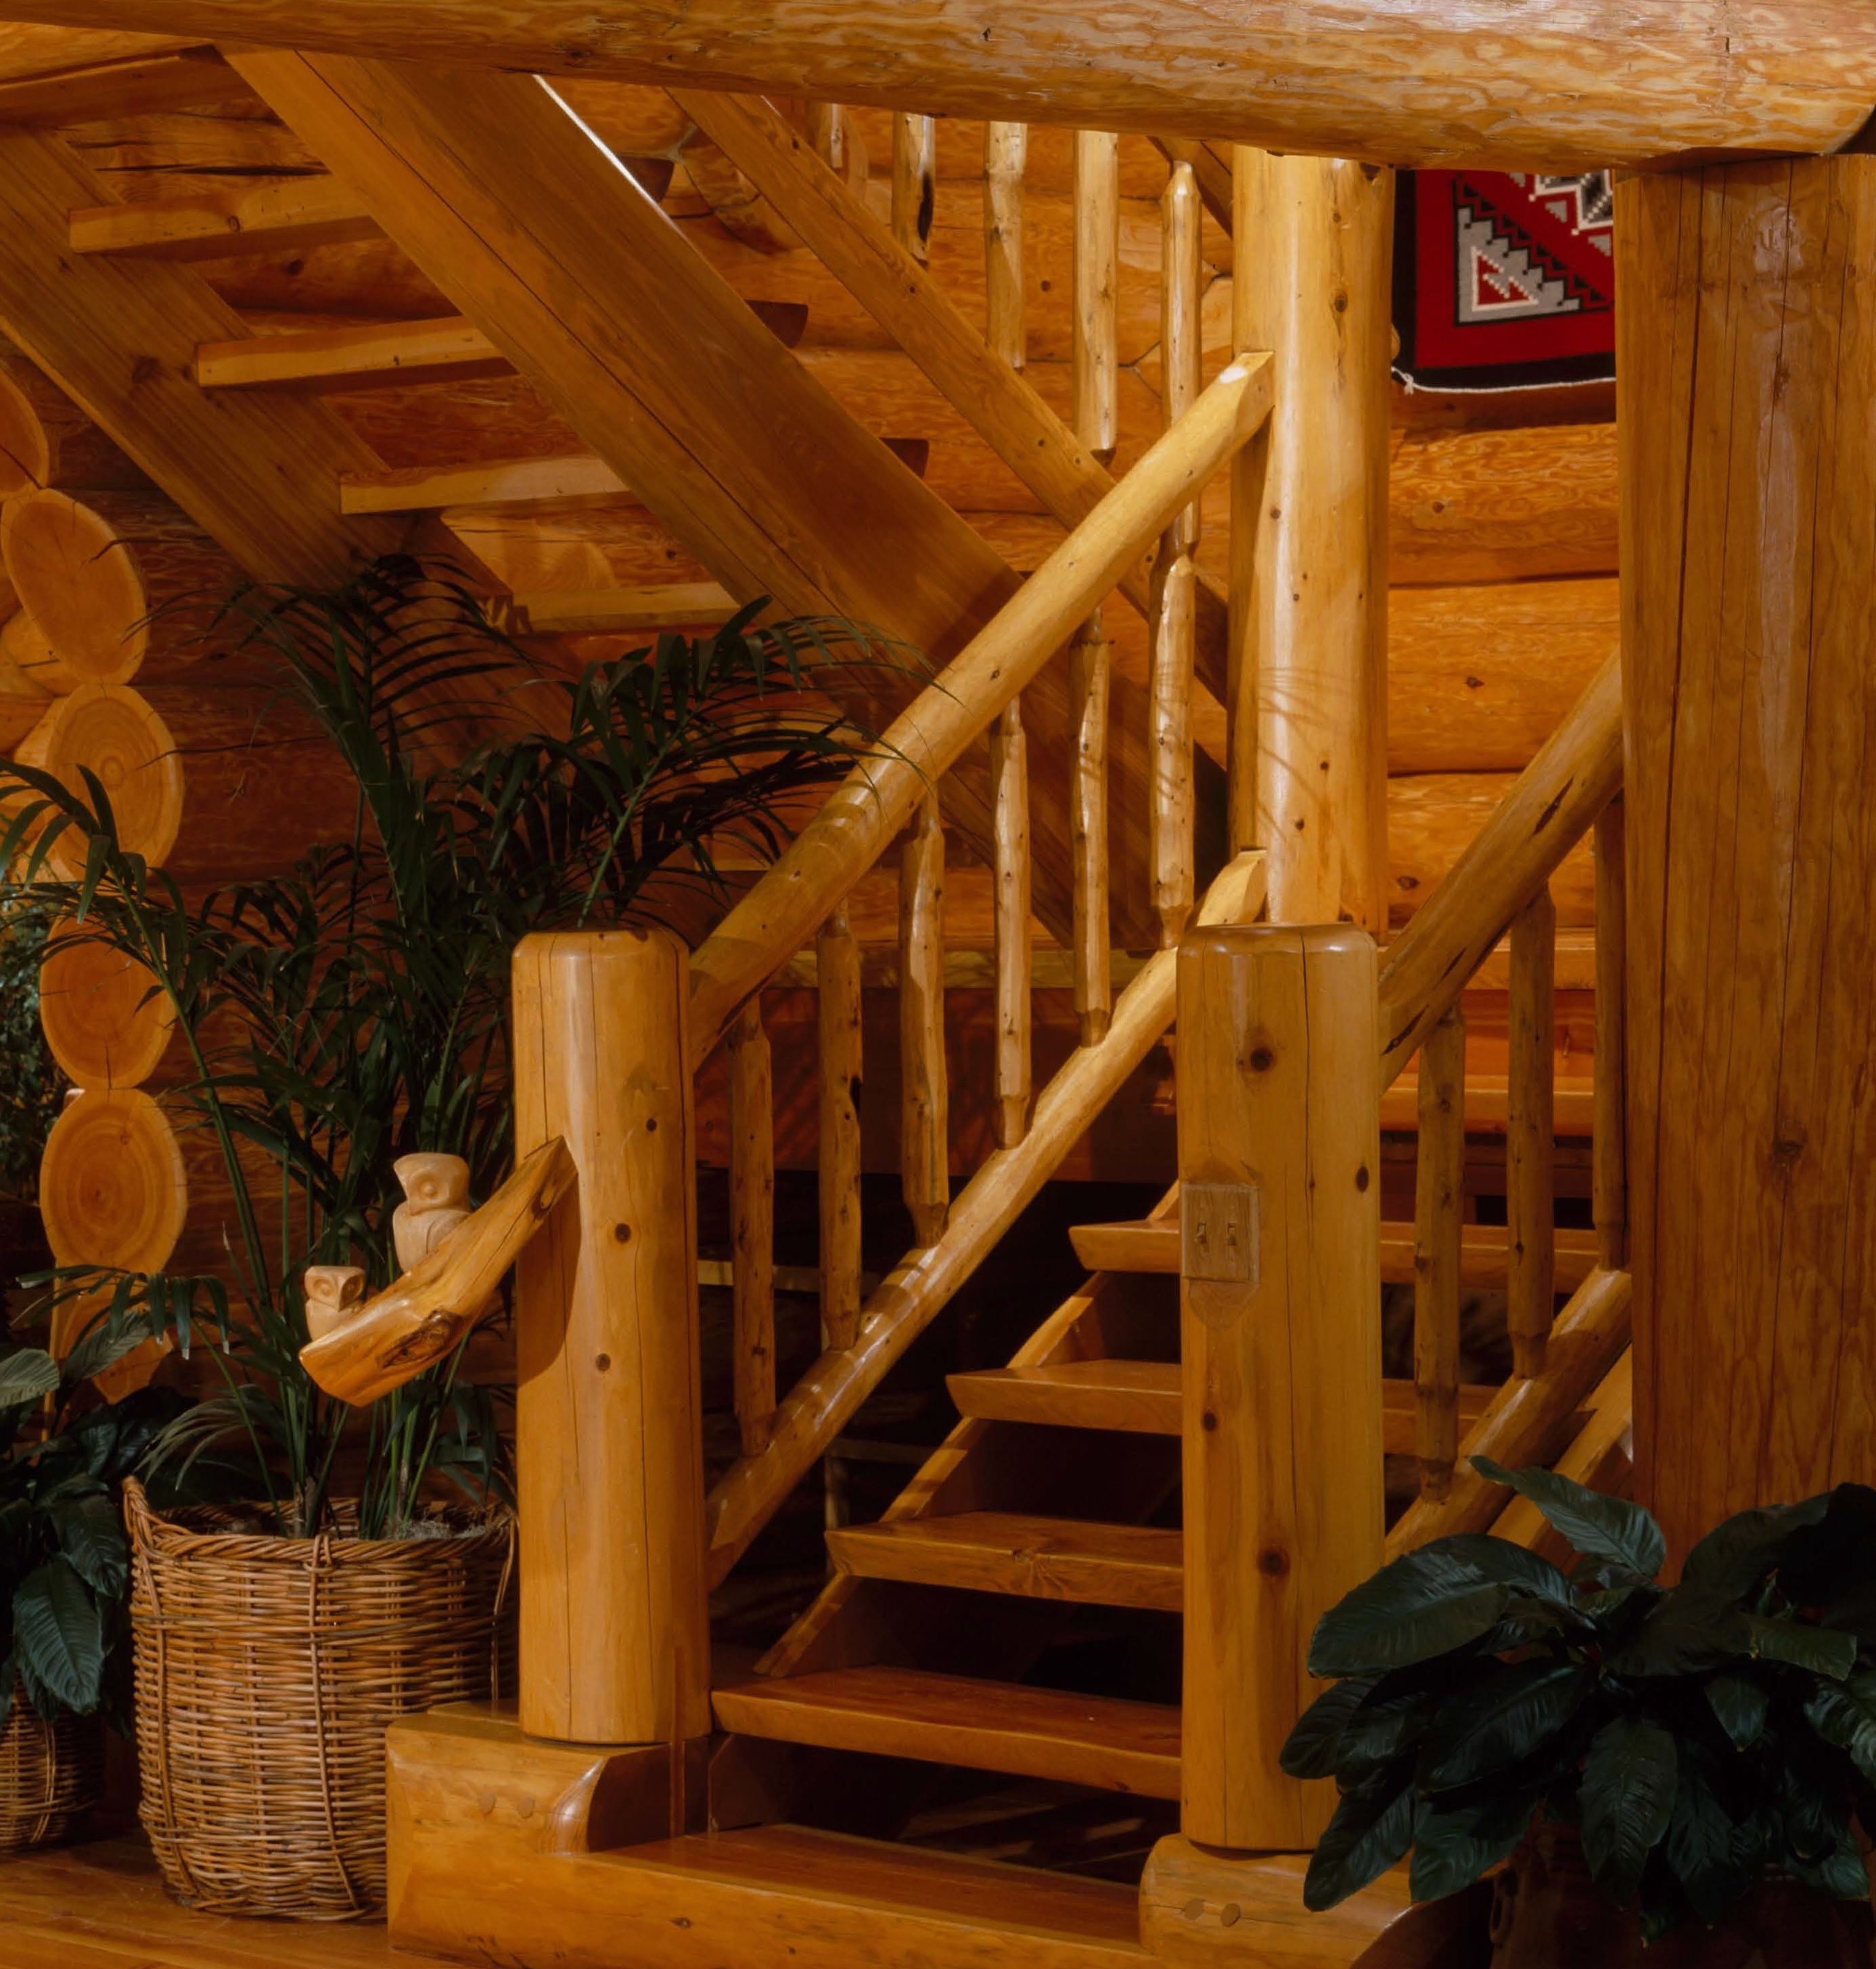 Custom Hand Made Log Staircase With Owl Carvings On Rustic Railing In  Wyoming Log Home.